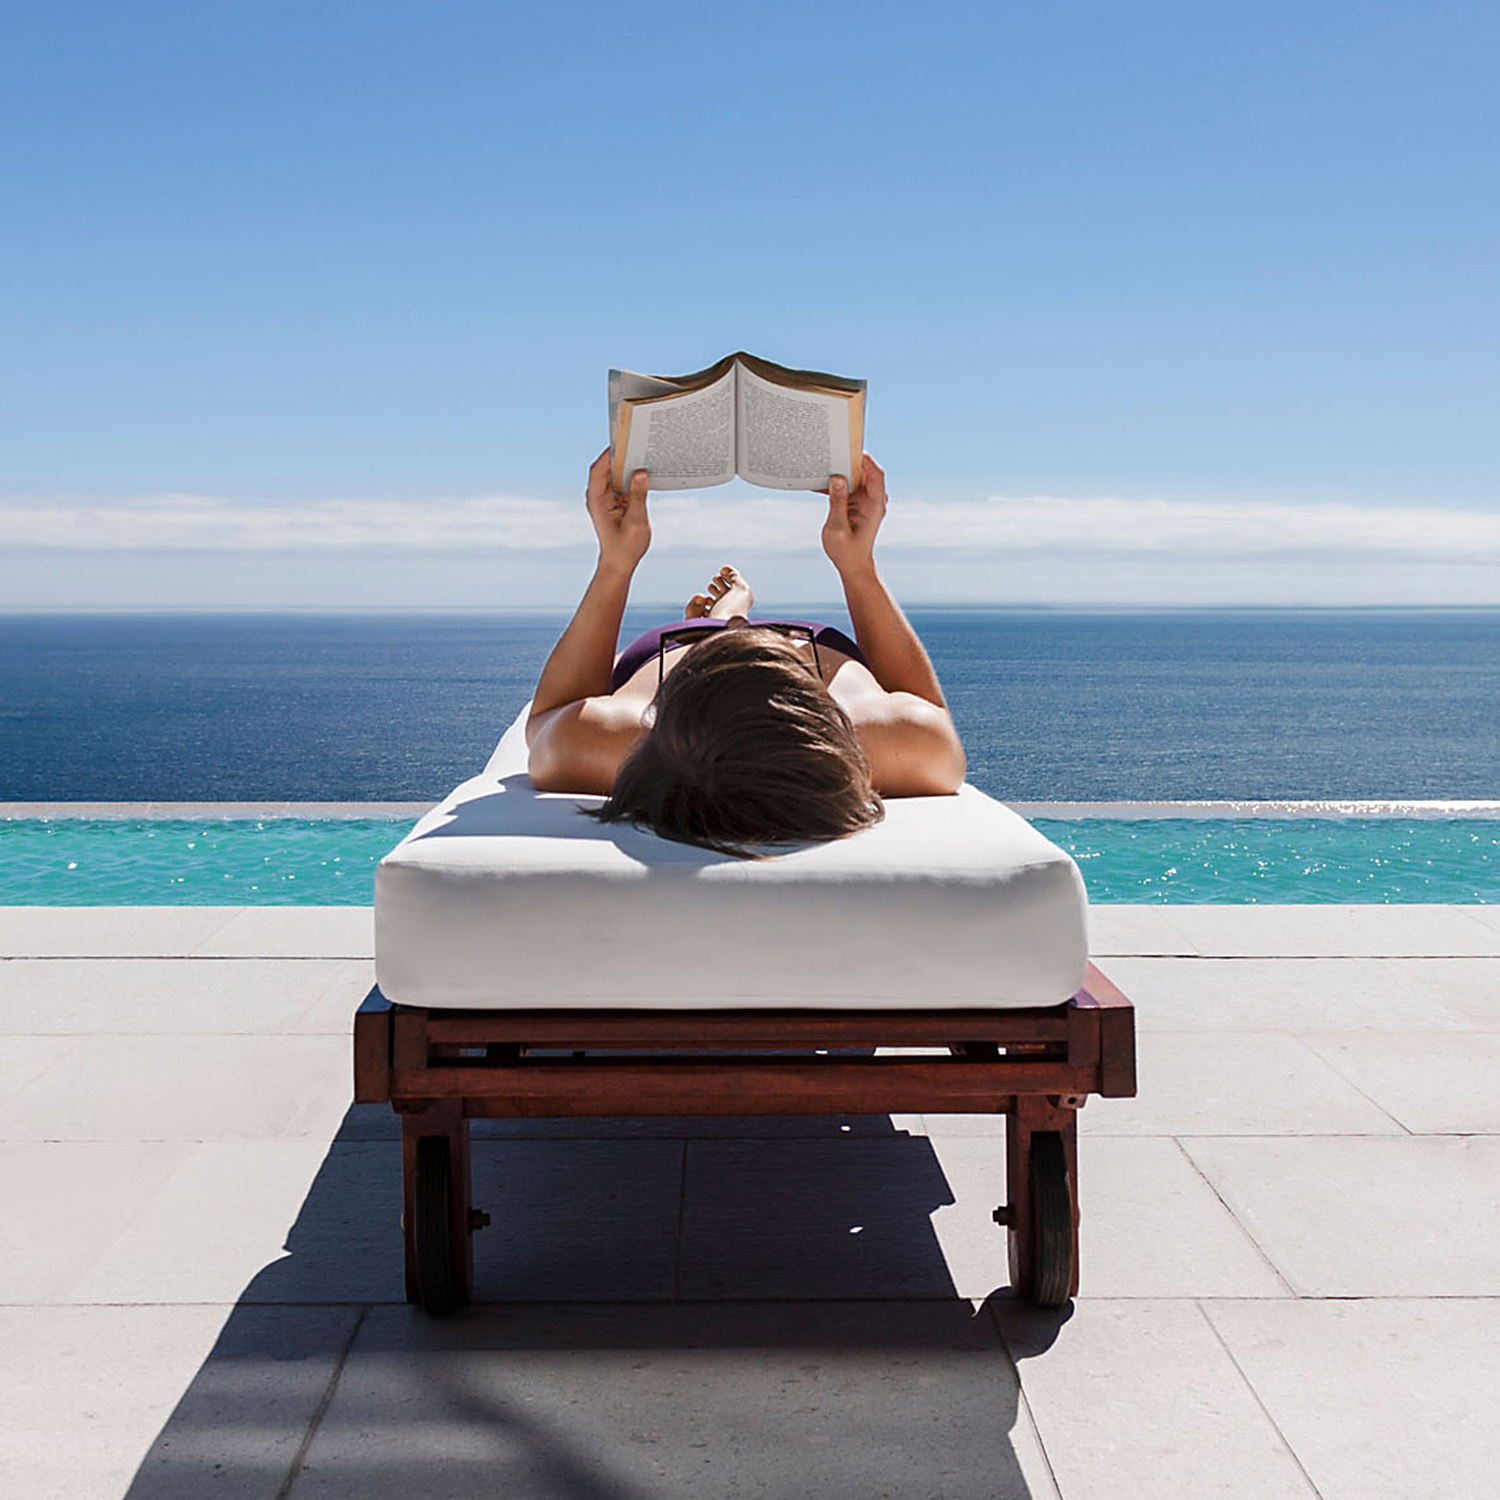 woman reading on lounge chair ocean view